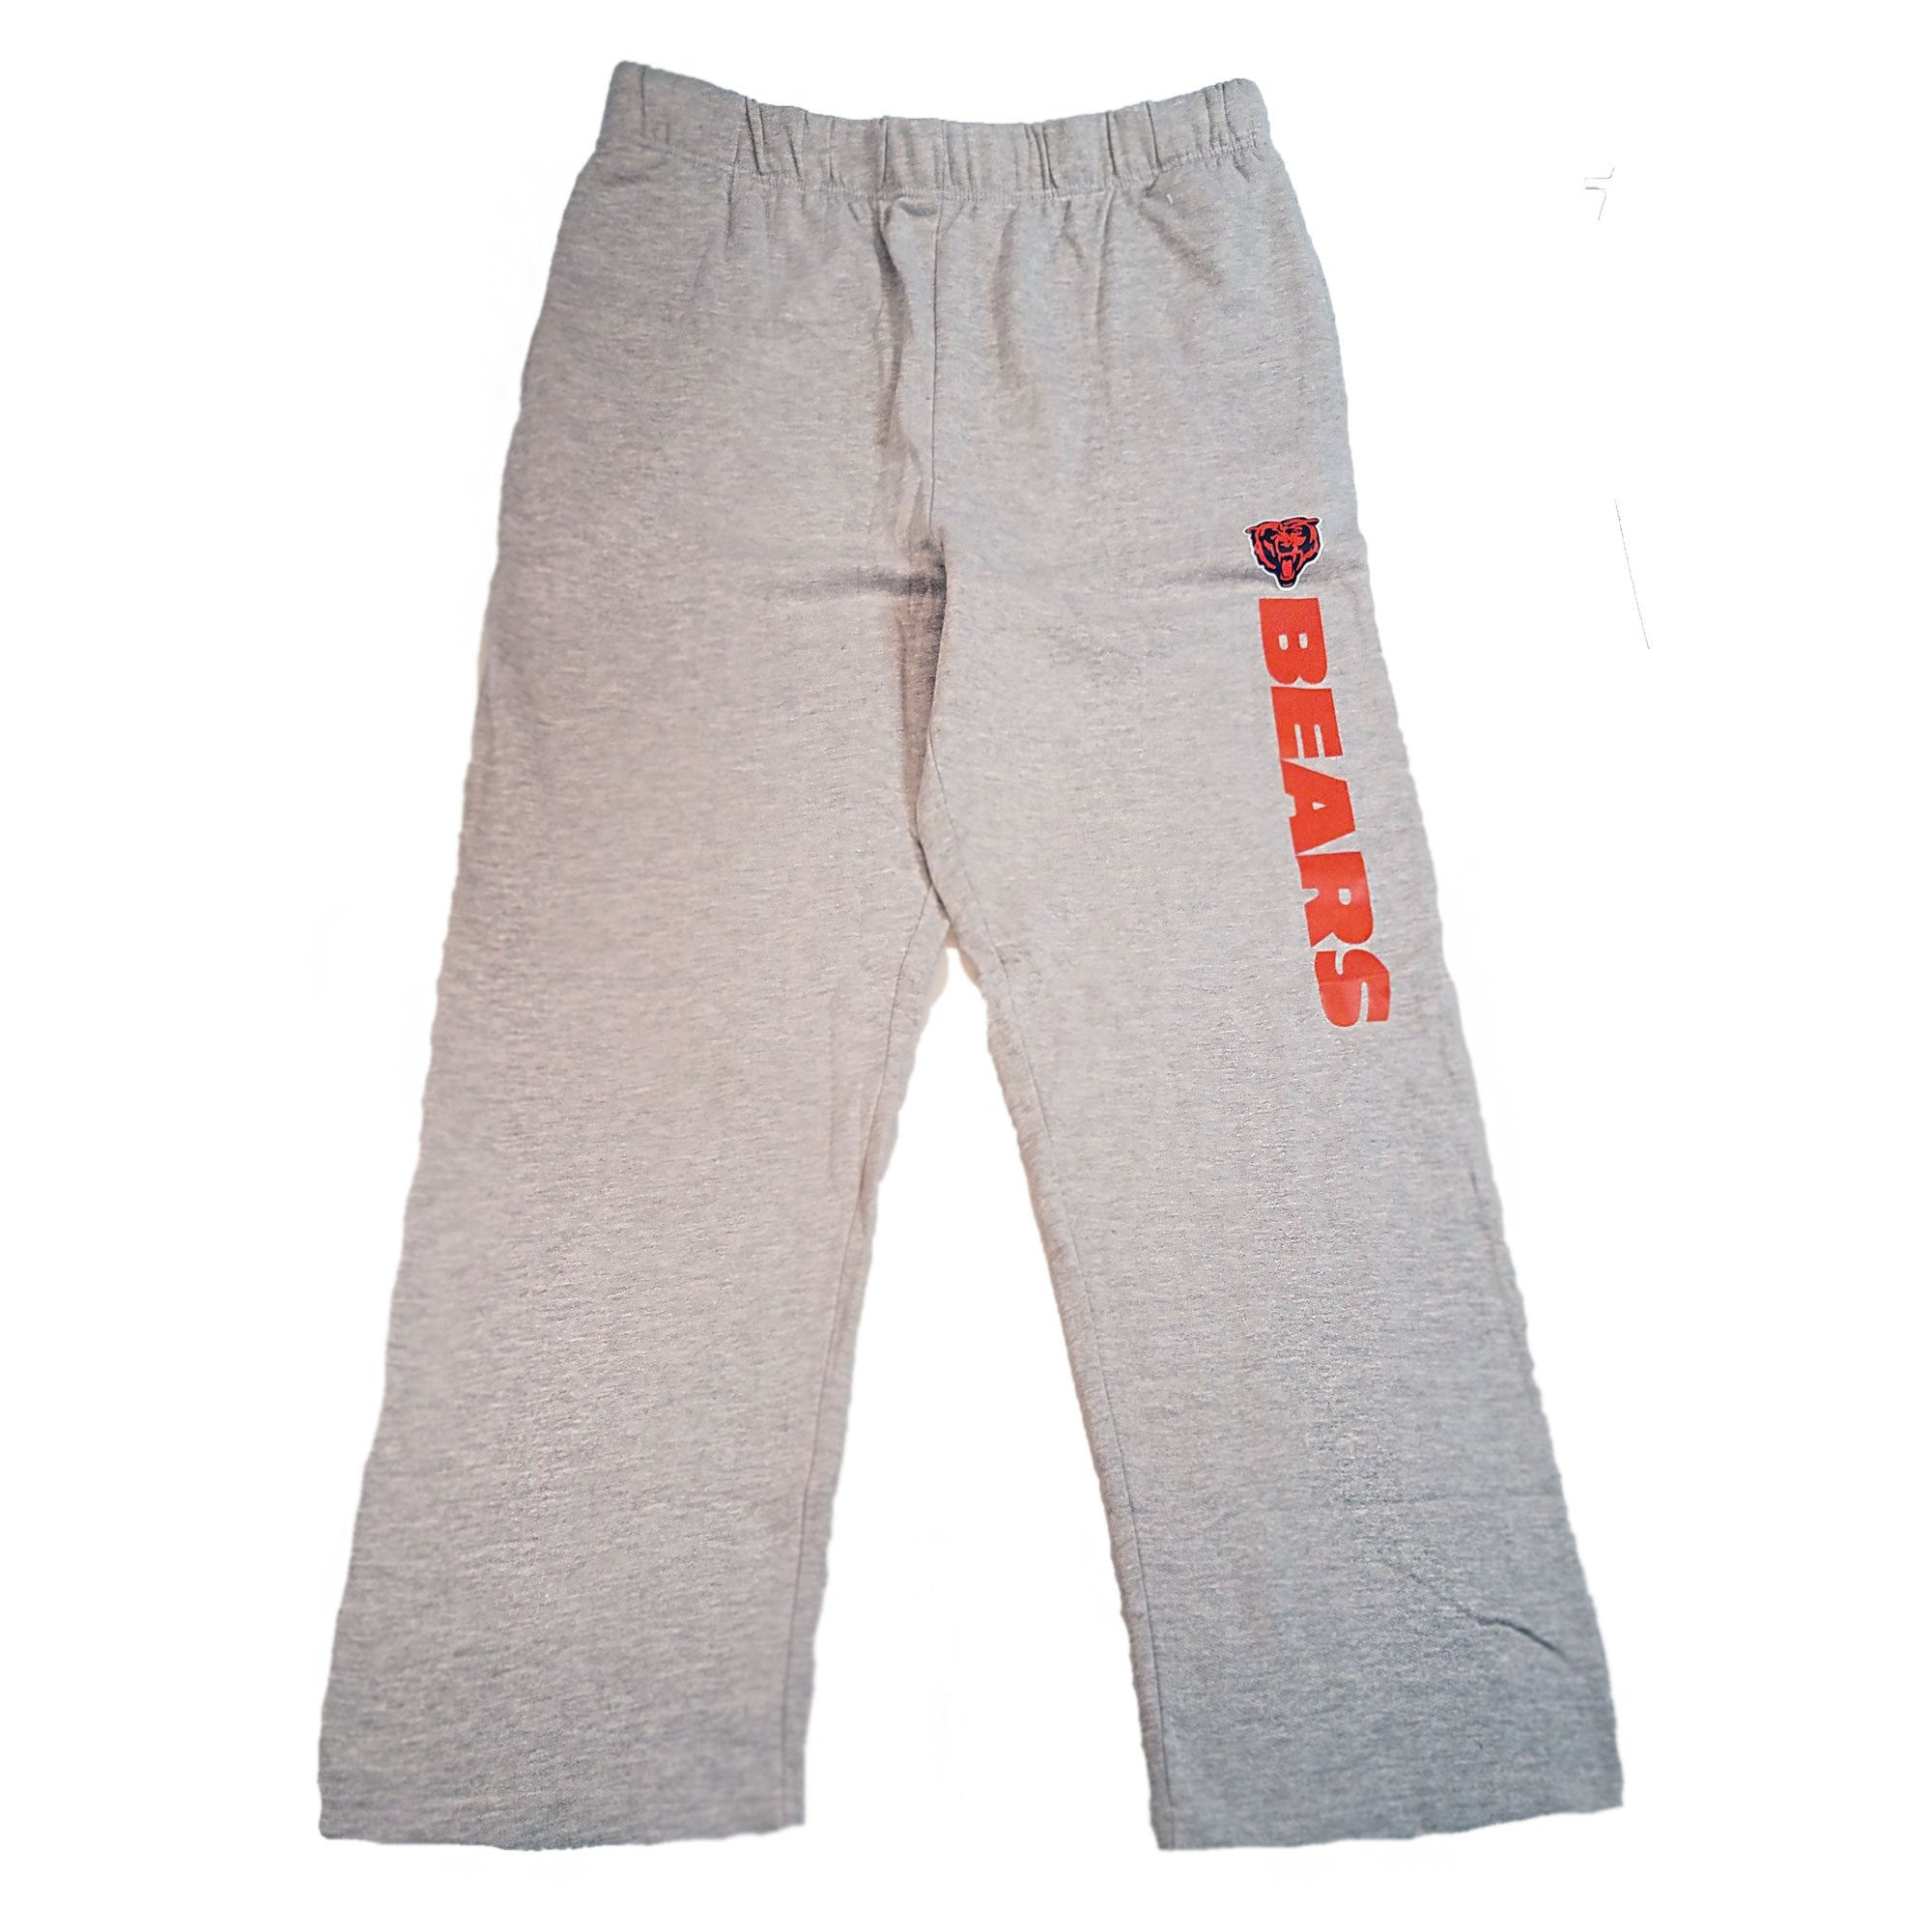 X-Large Chicago Sweatpants Men/'s and Women/'s GrayBlueRed Sizes Small